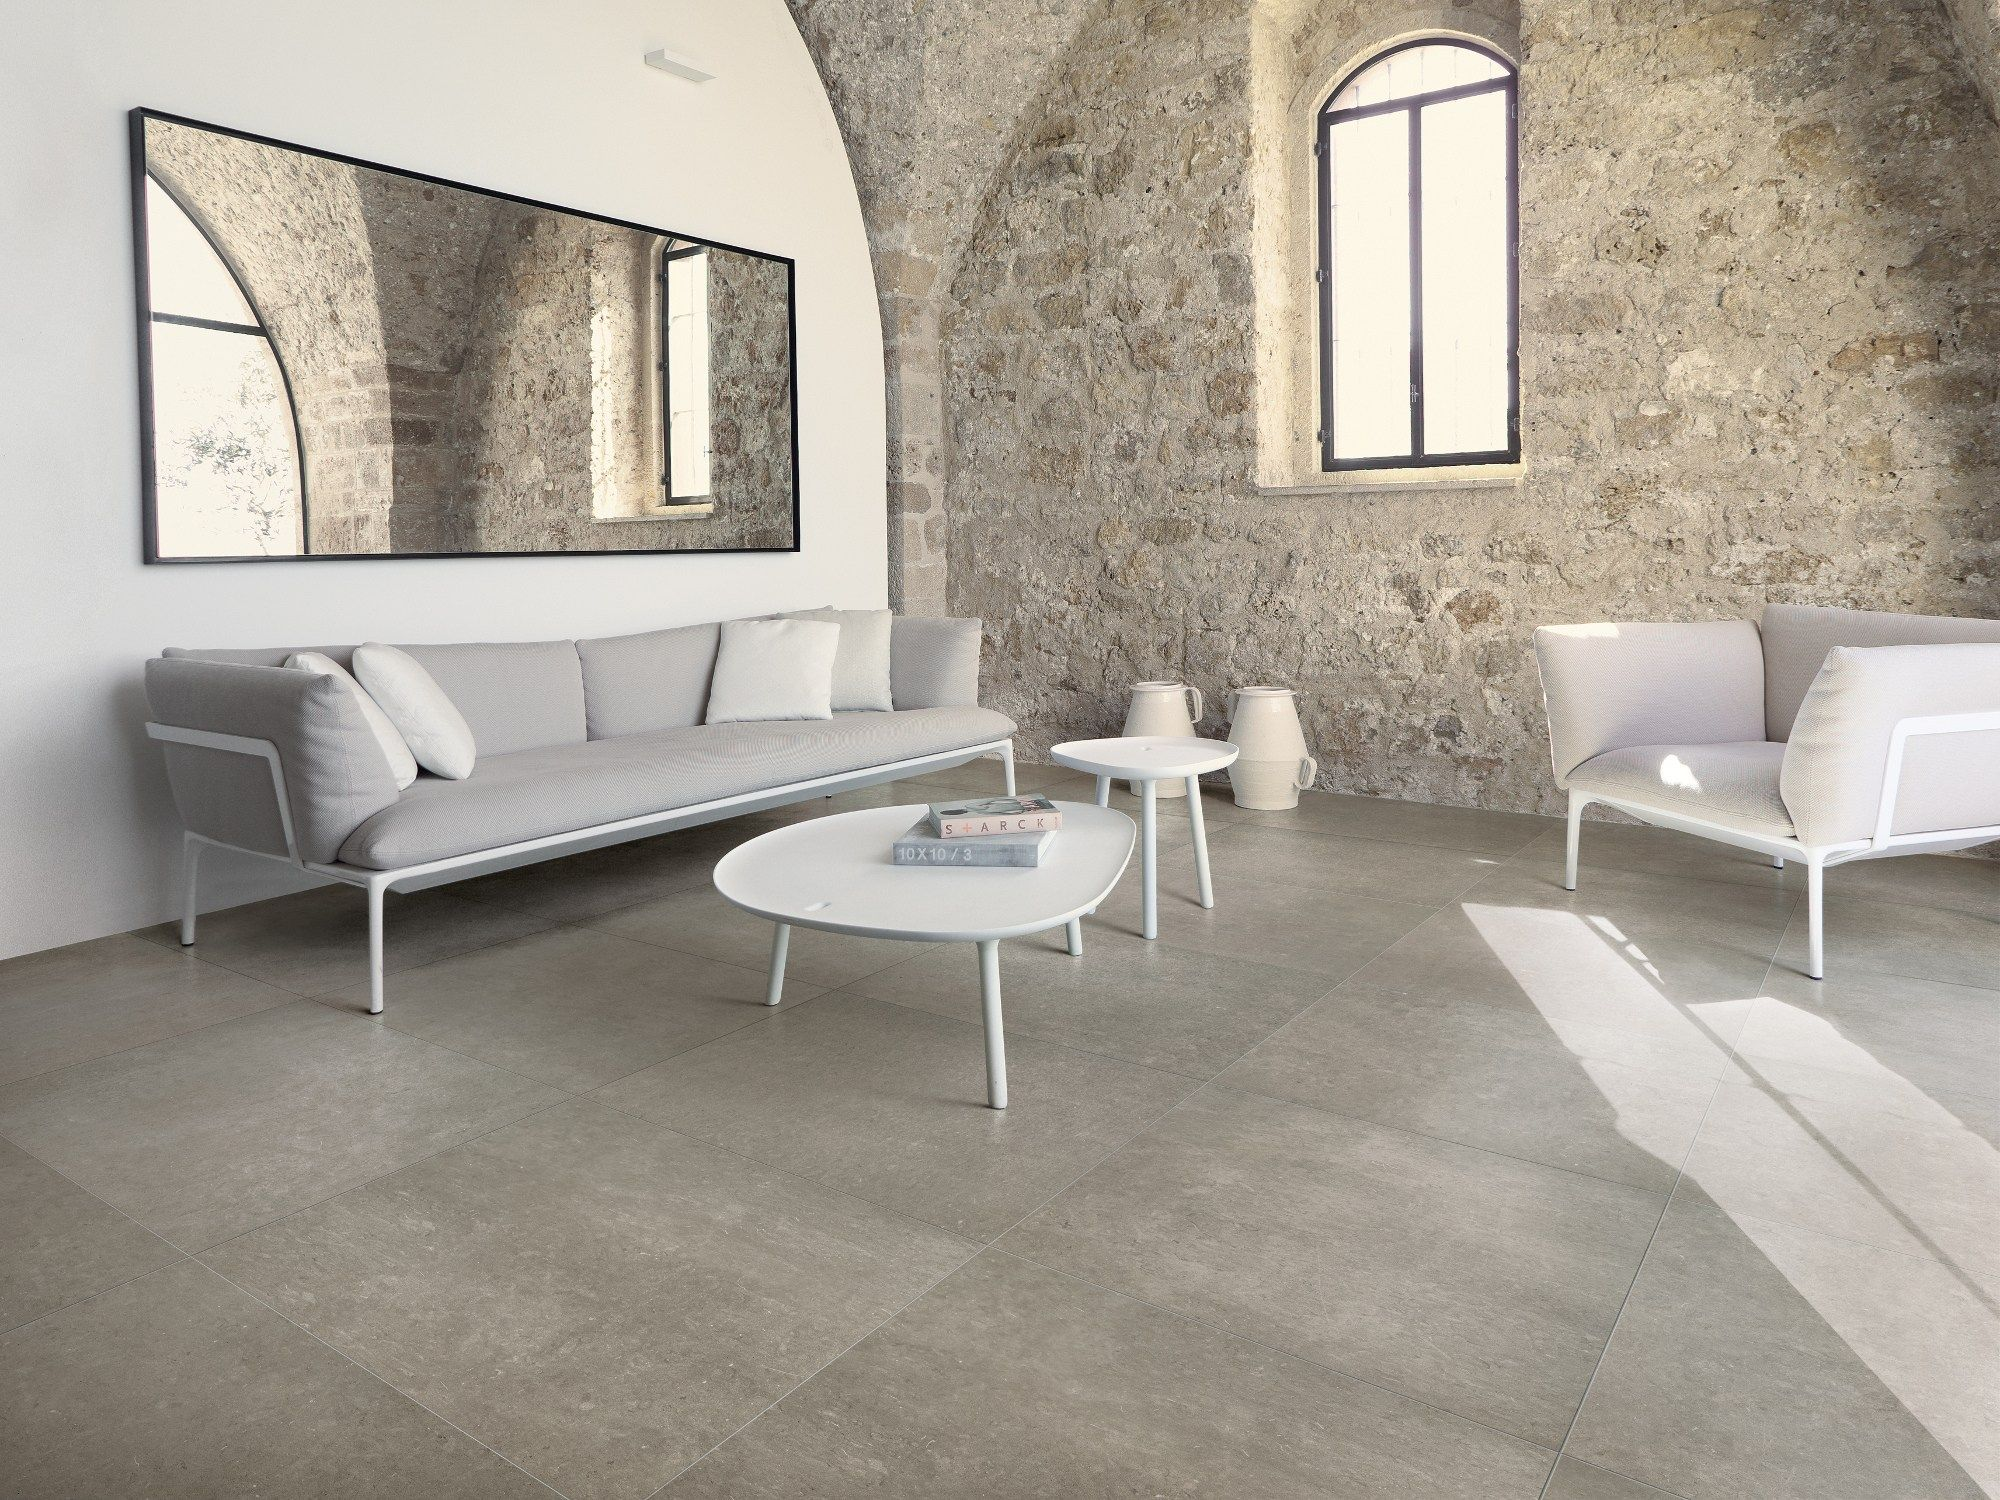 Ceramic Flooring With Stone Effect Poesia By Ceramiche Refin Living Room Tiles Rustic Living Room Design Brick Living Room #stone #floors #for #living #room